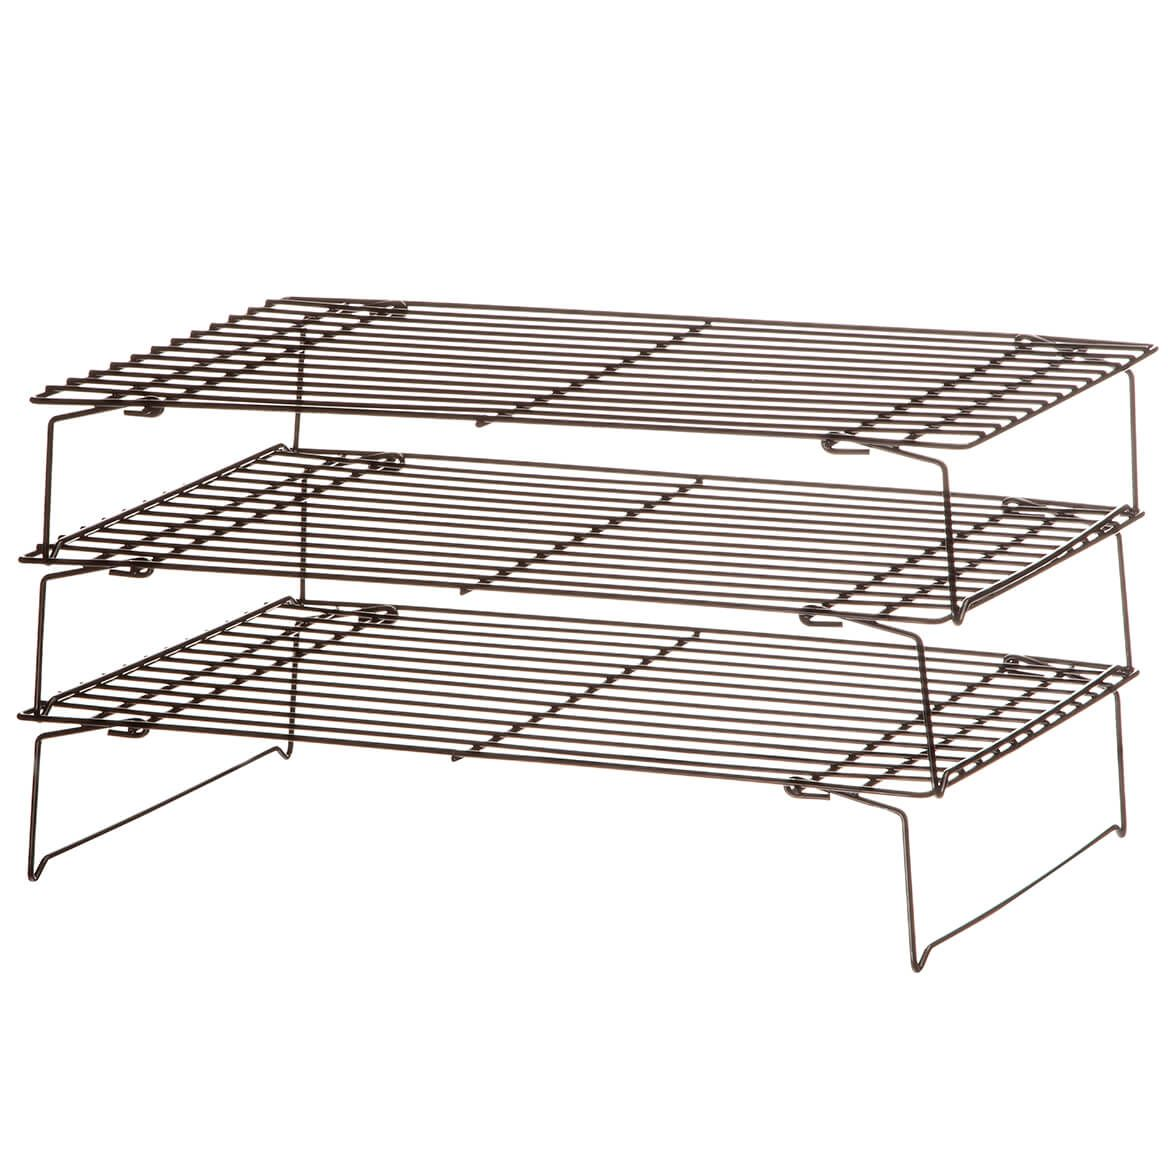 3 Piece Cooling Rack Set by Chefs Pride-367502